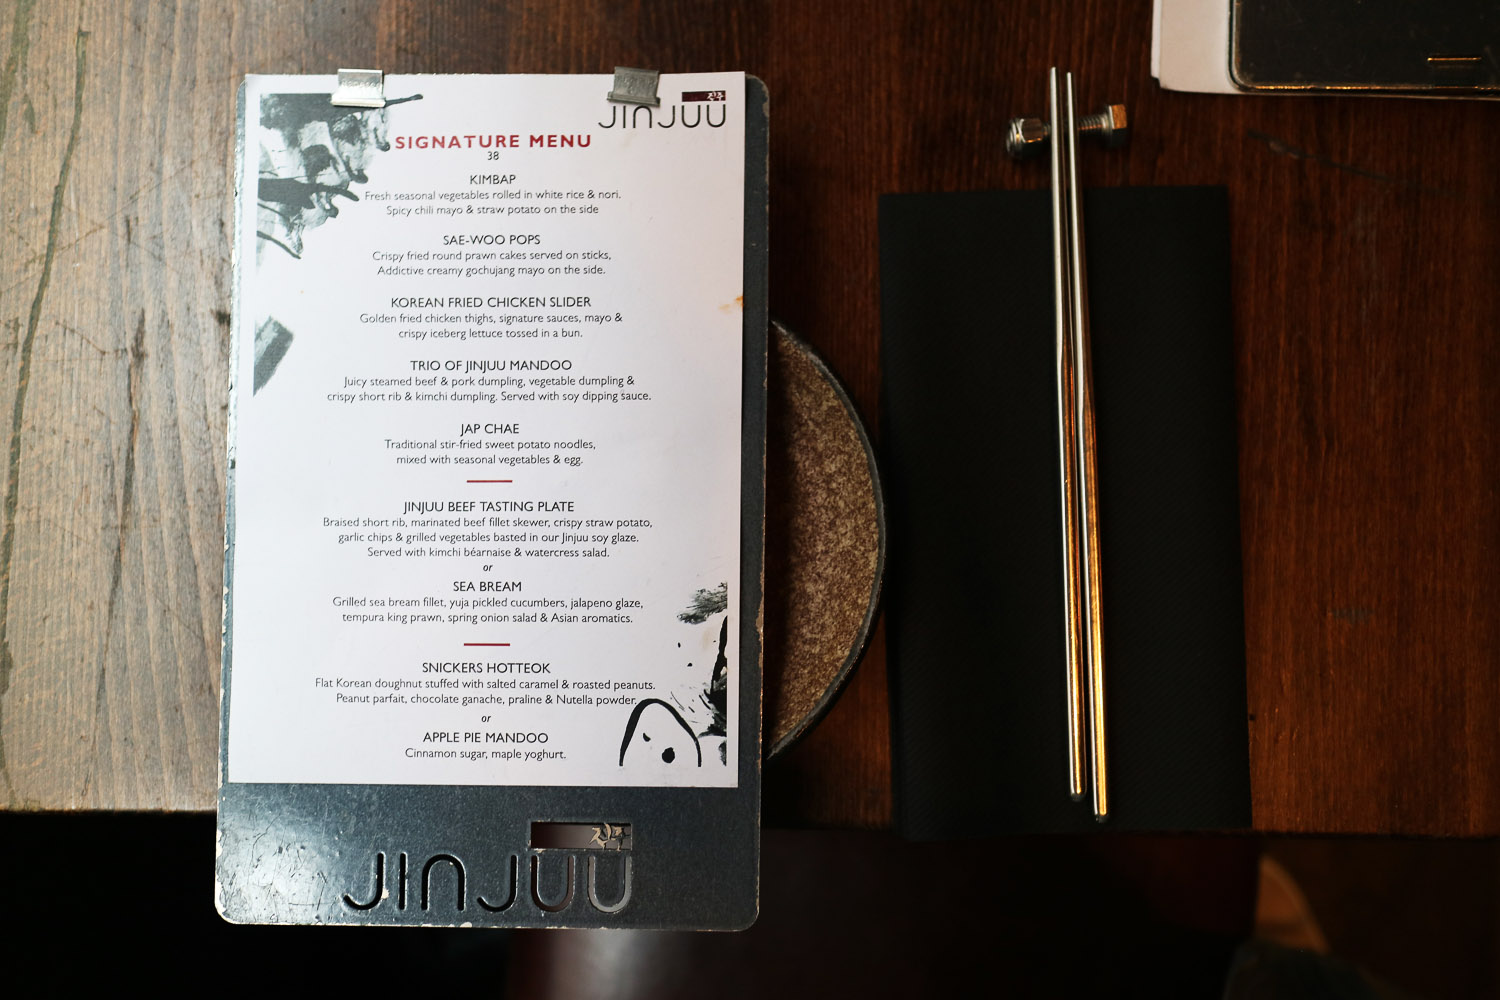 JinJuu Korean Food Restaurant